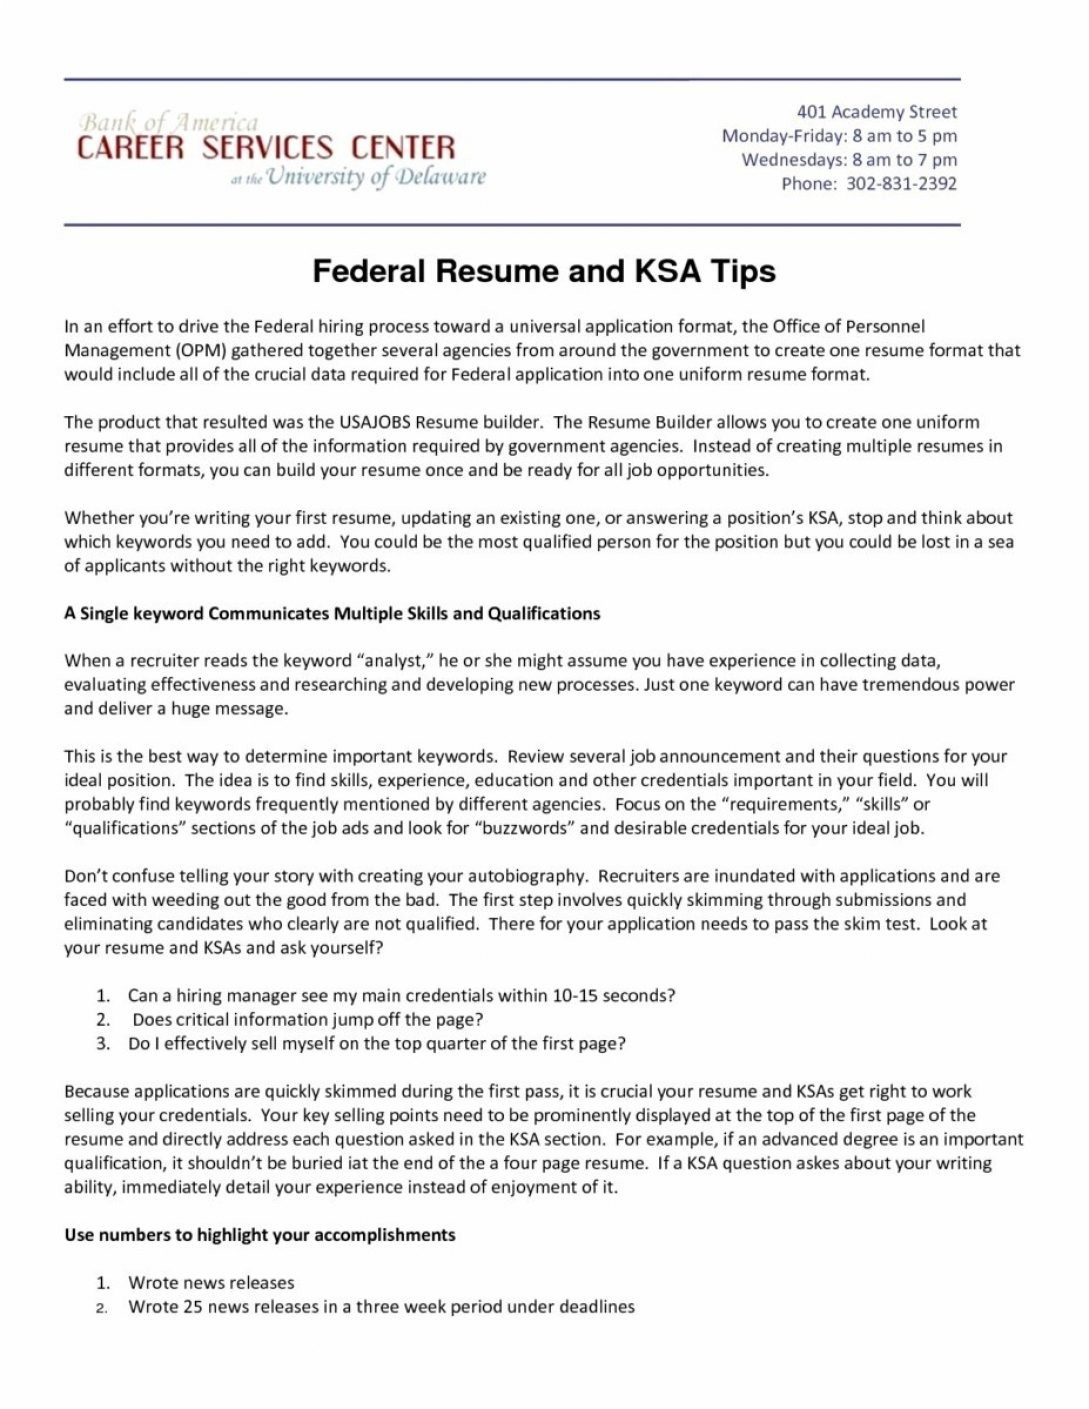 12 13 resume maker for college students